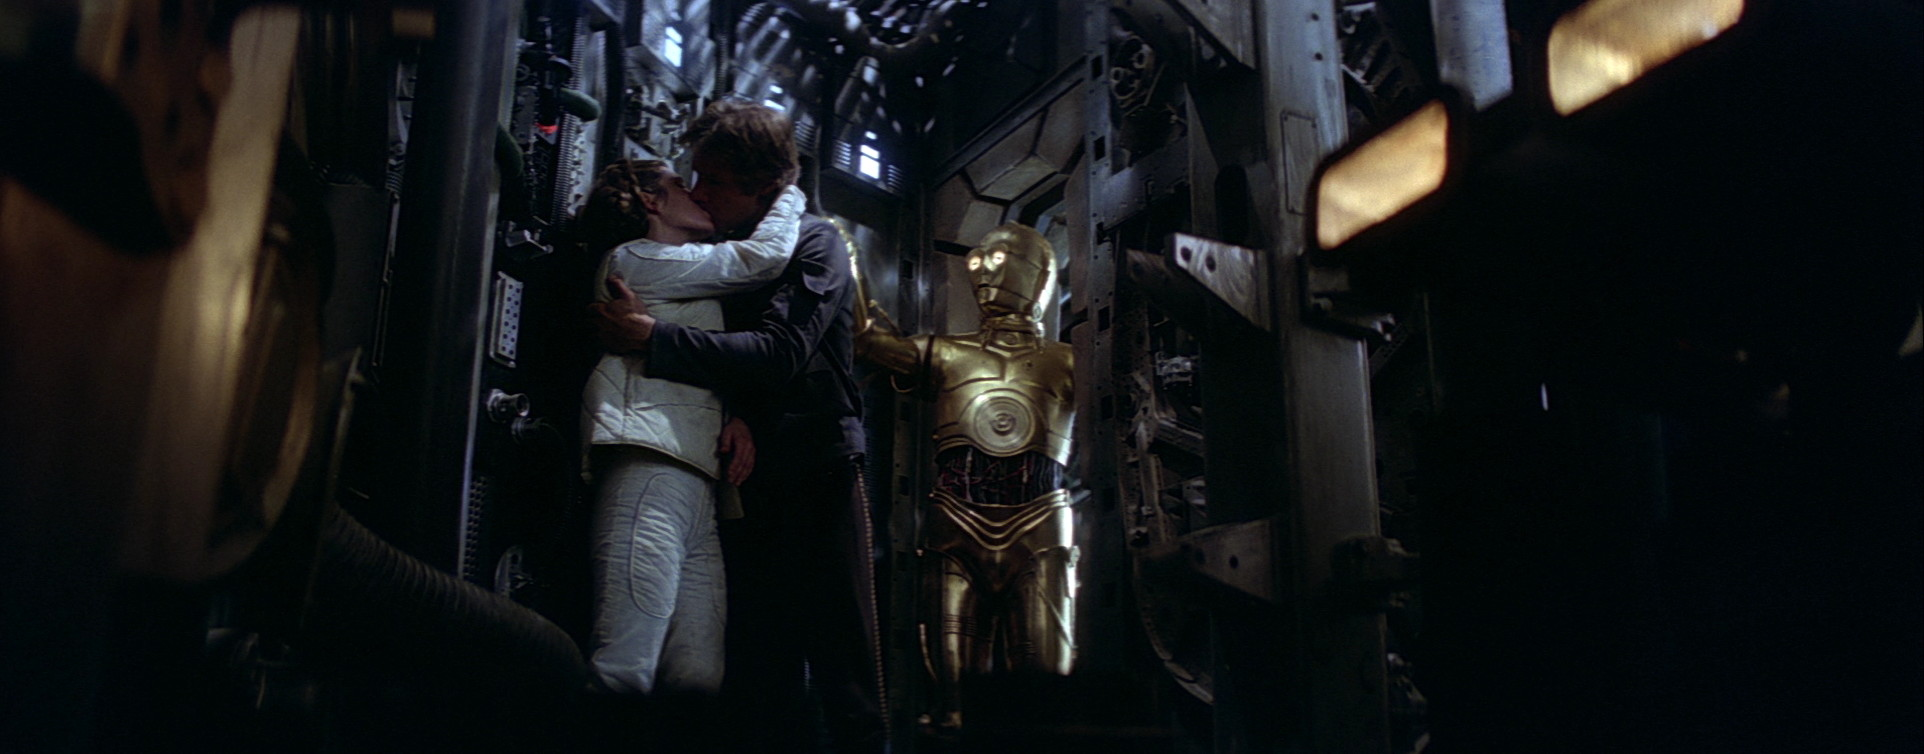 C-3PO interrupts Han and Leia in The Empire Strikes Back